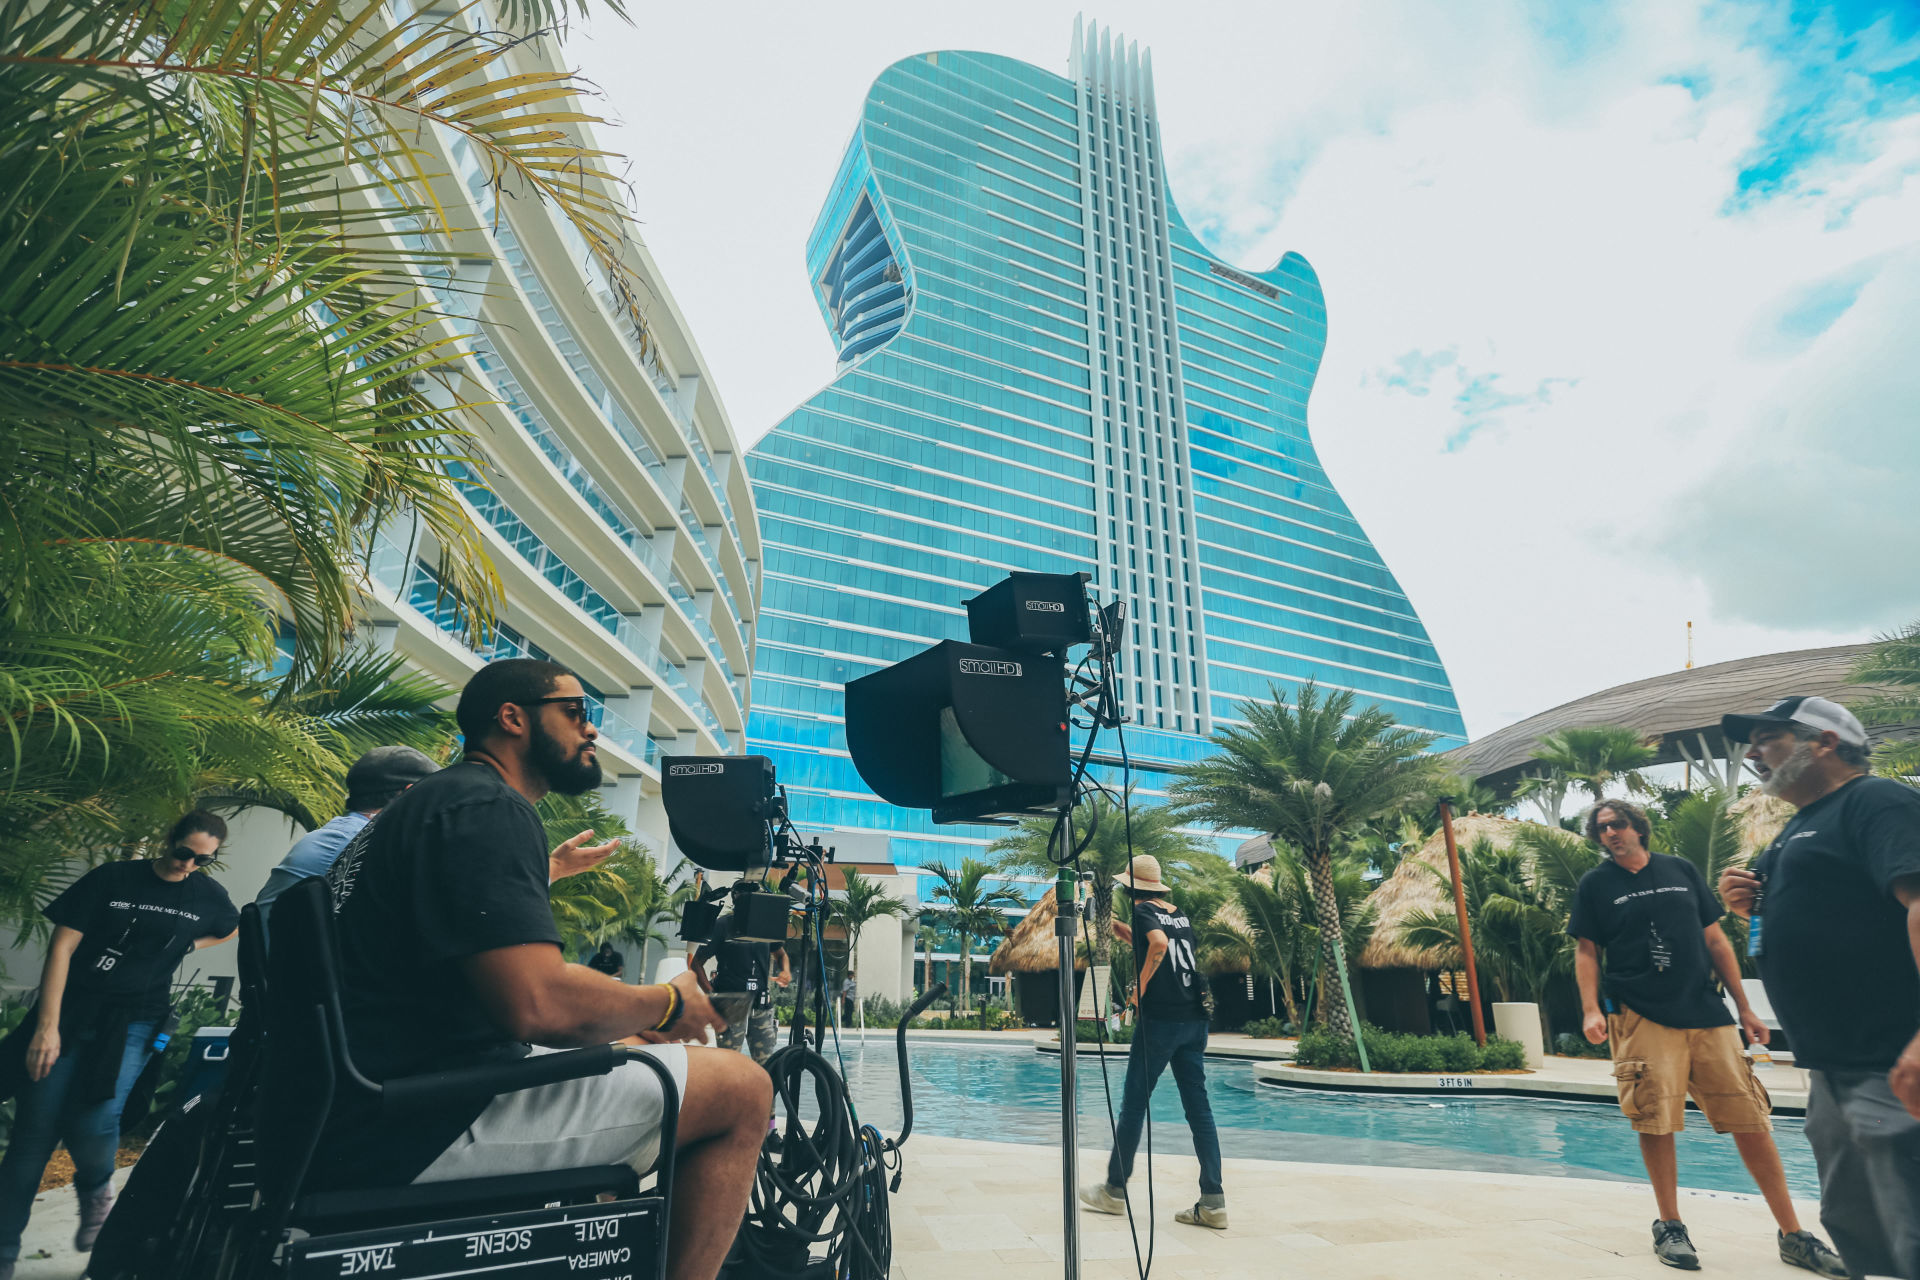 Seminole Hard Rock Hotel and Casino - Artex Productions - Best Commercial Video Production, VFX and Animation Team in Florida